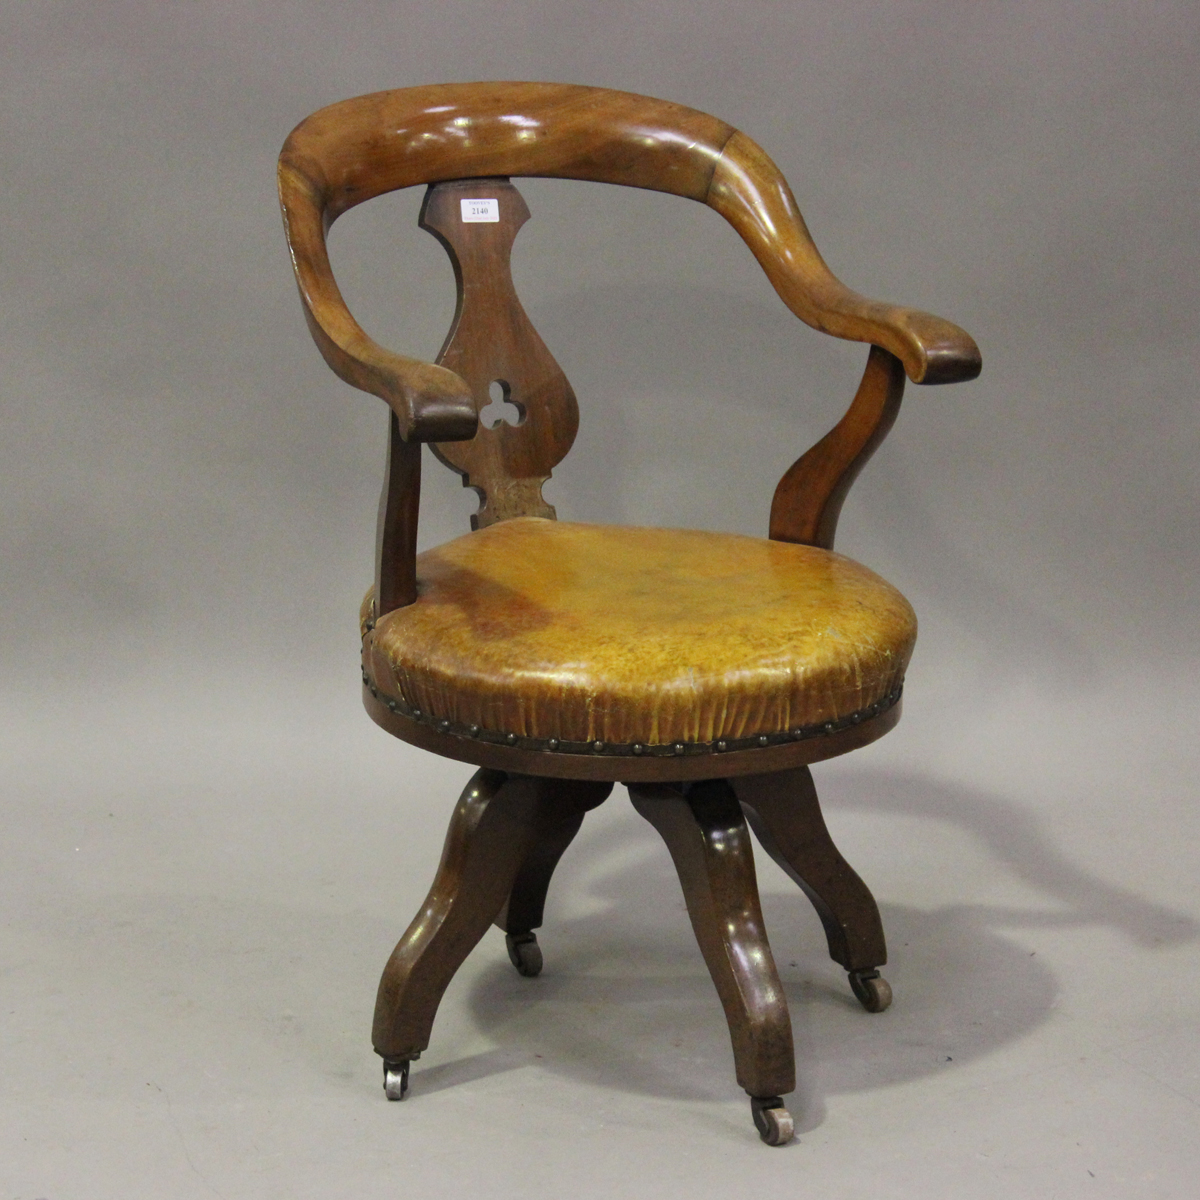 A late Victorian mahogany framed tub back revolving desk chair with a circular brown leather seat,